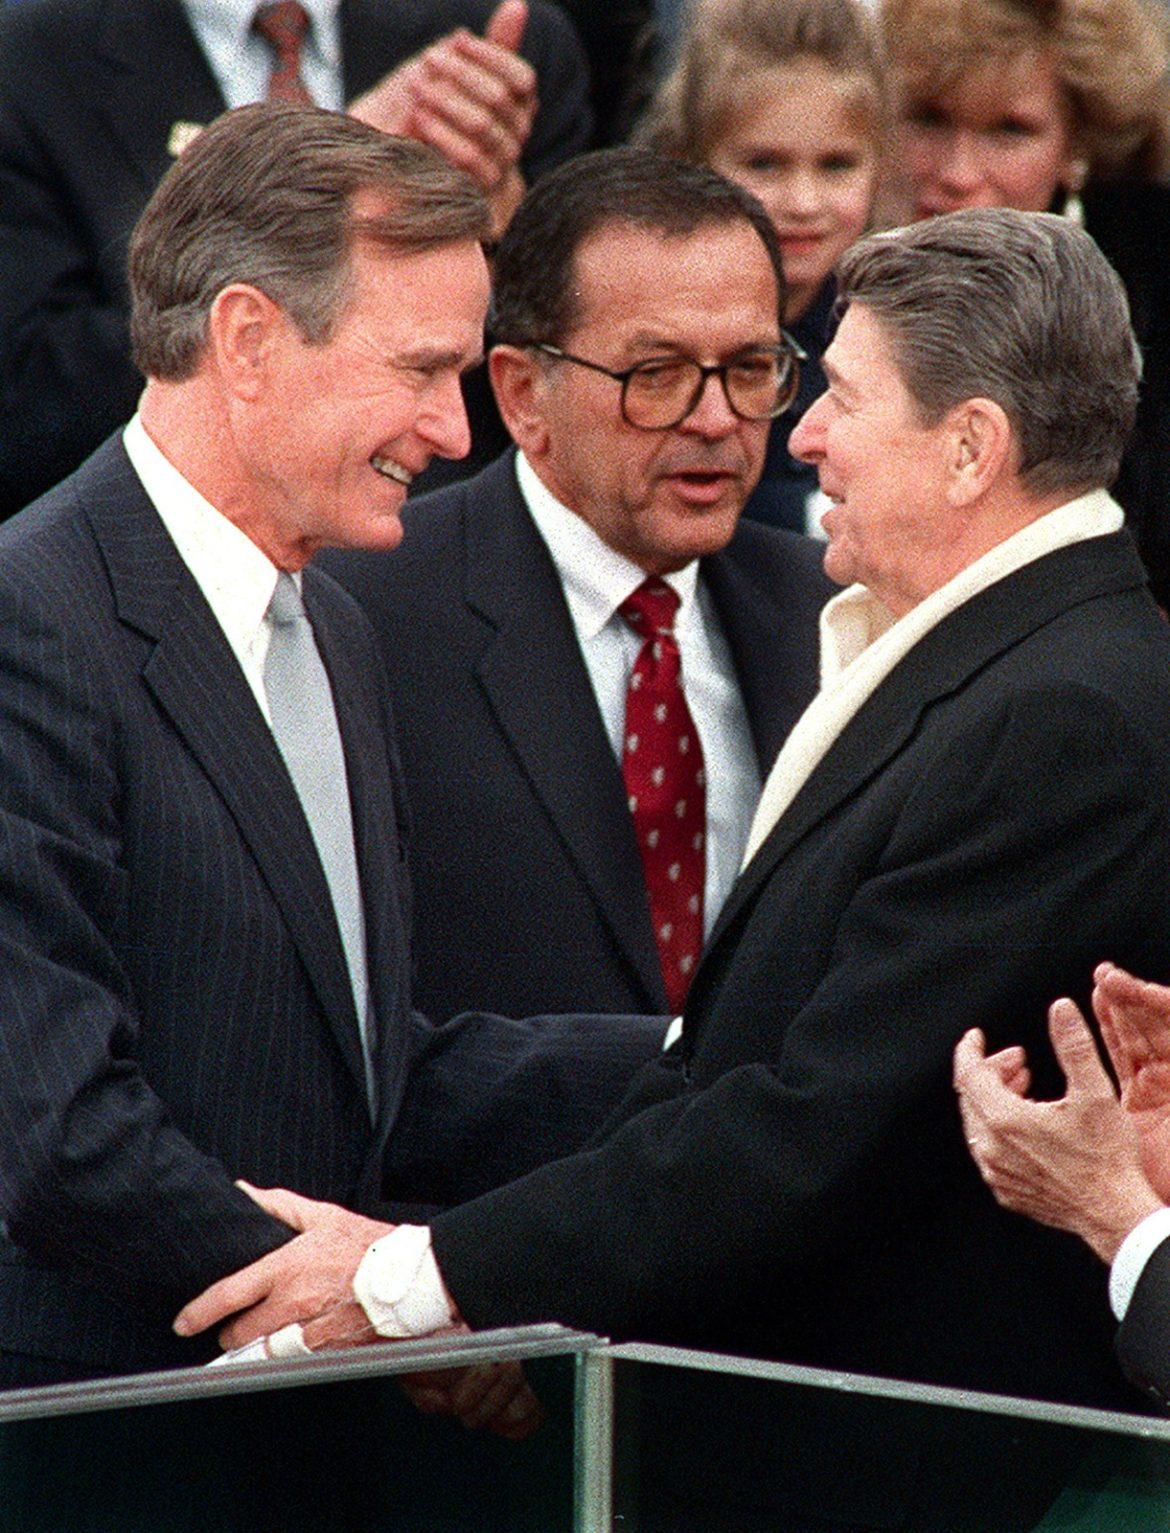 President+Ronald+Reagan+greets+newly-inaugurated+president+George+Bush%2C+Sr.%2C+during+Bush%27s+swearing-in+ceremony%2C+January+20%2C+1989%2C+in+Washington%2C+D.C.+%28Mimi+Out%29+%28June+8%29%0APhotograph+by+Joe+Burbank%2F+Orlando+Sentinel